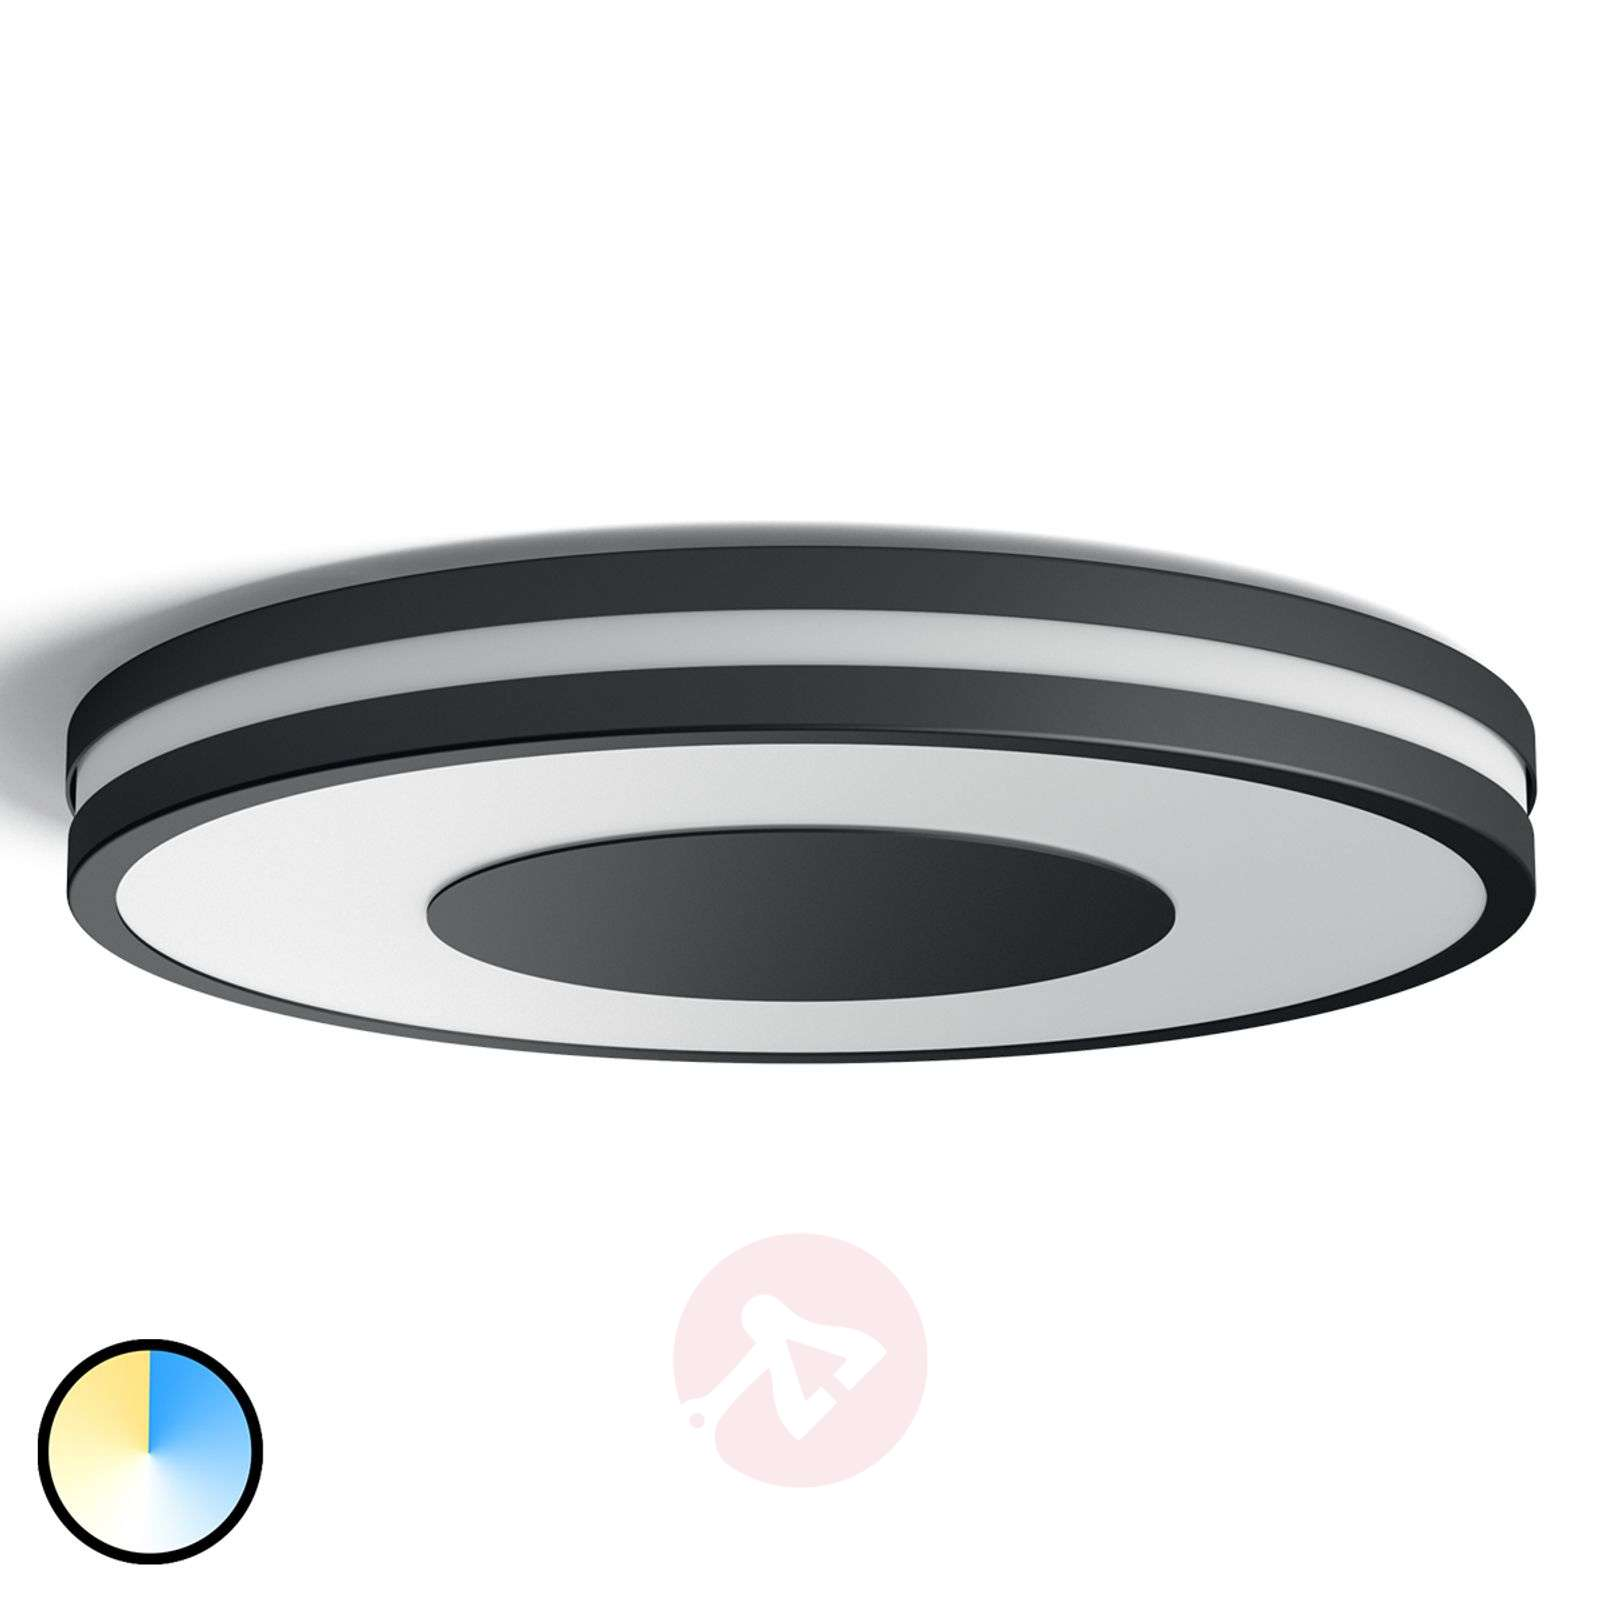 LED ceiling light Philips Hue Being, dimmer switch ...